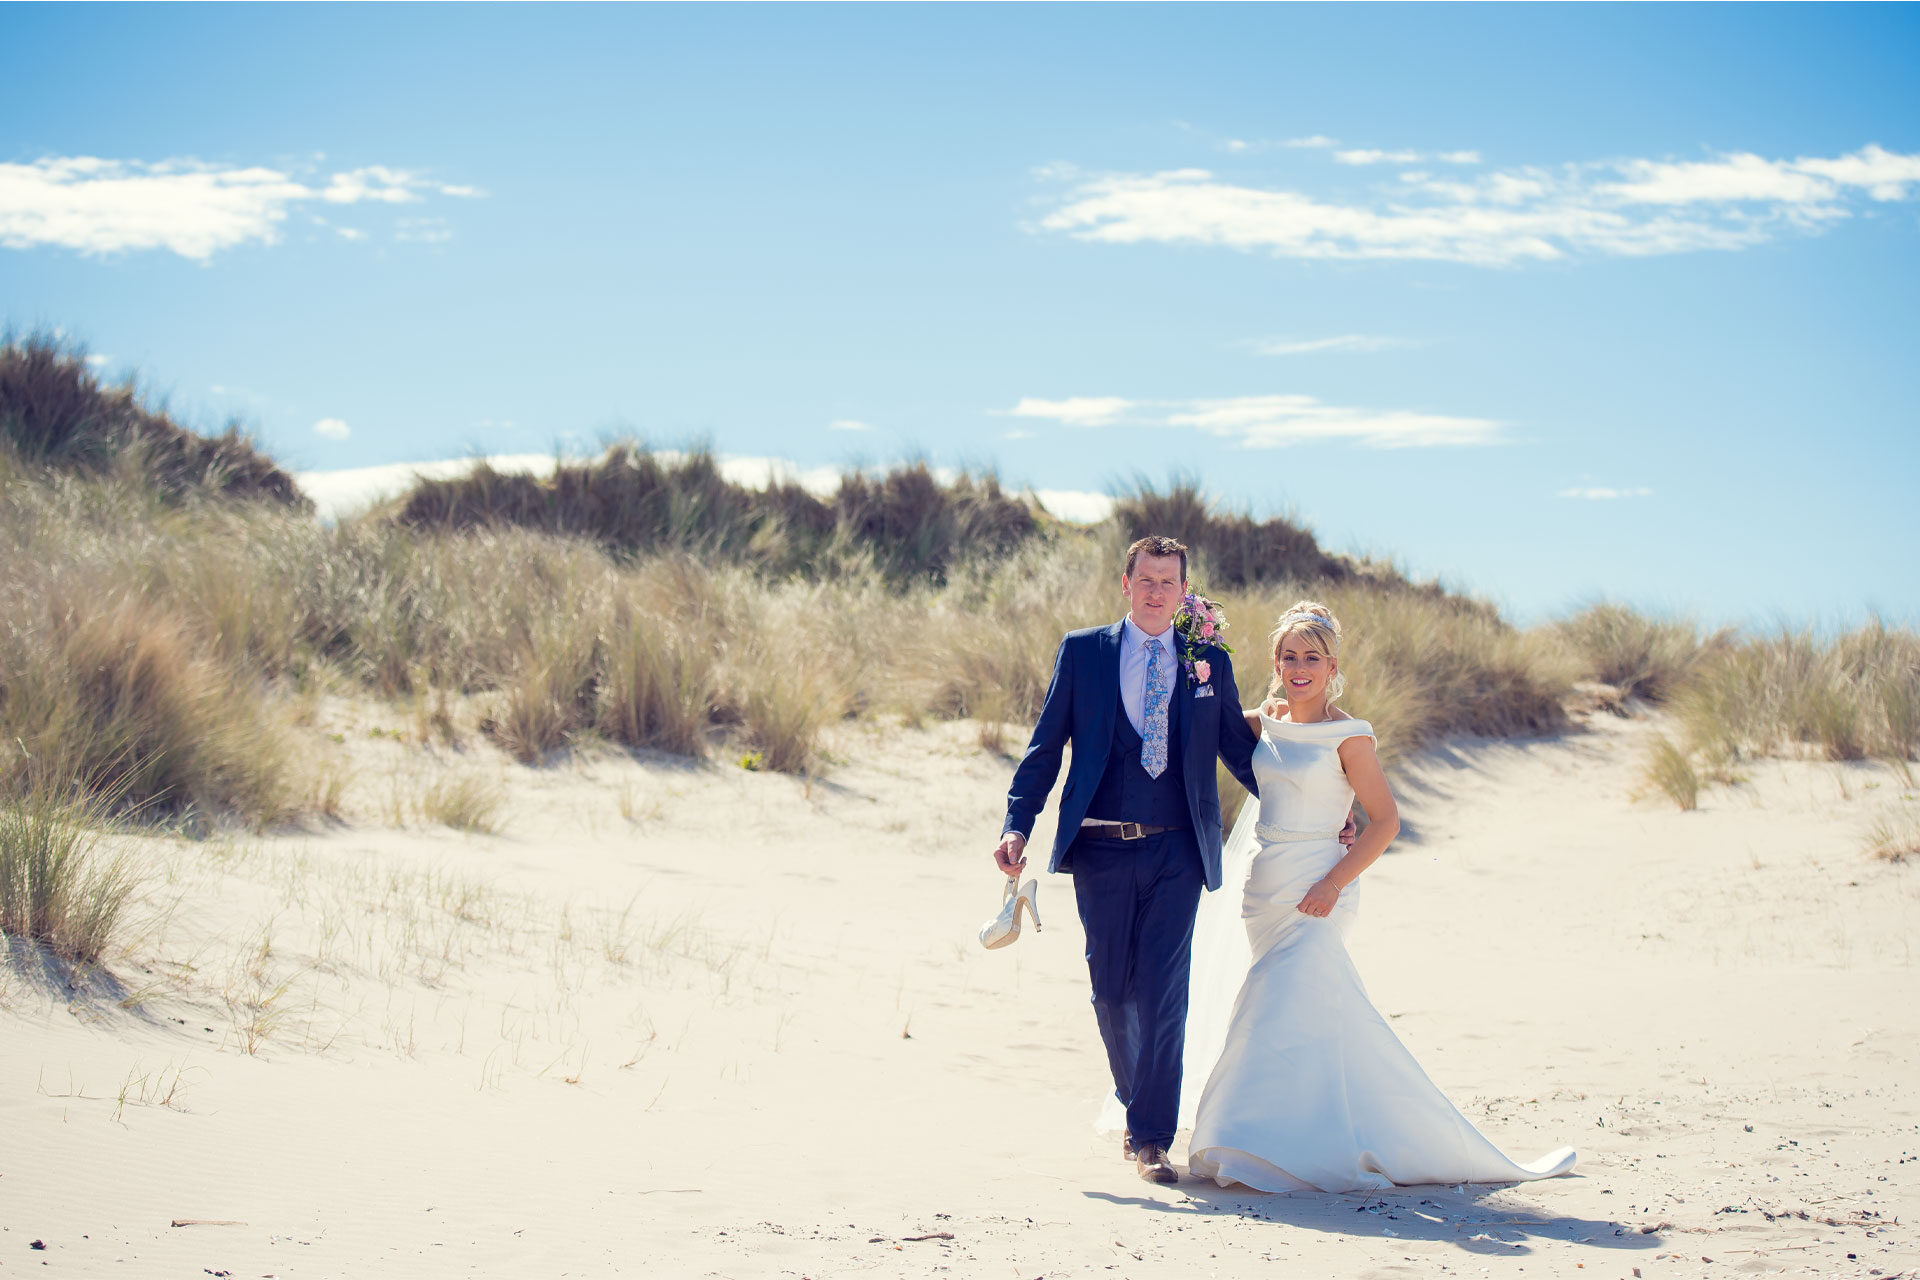 Photo of Noeleen and Cahal on their wedding day as they take a stroll on Benone Beach, Downhill, Coleraine, Co. Derry / Londonderry, Northern Ireland.